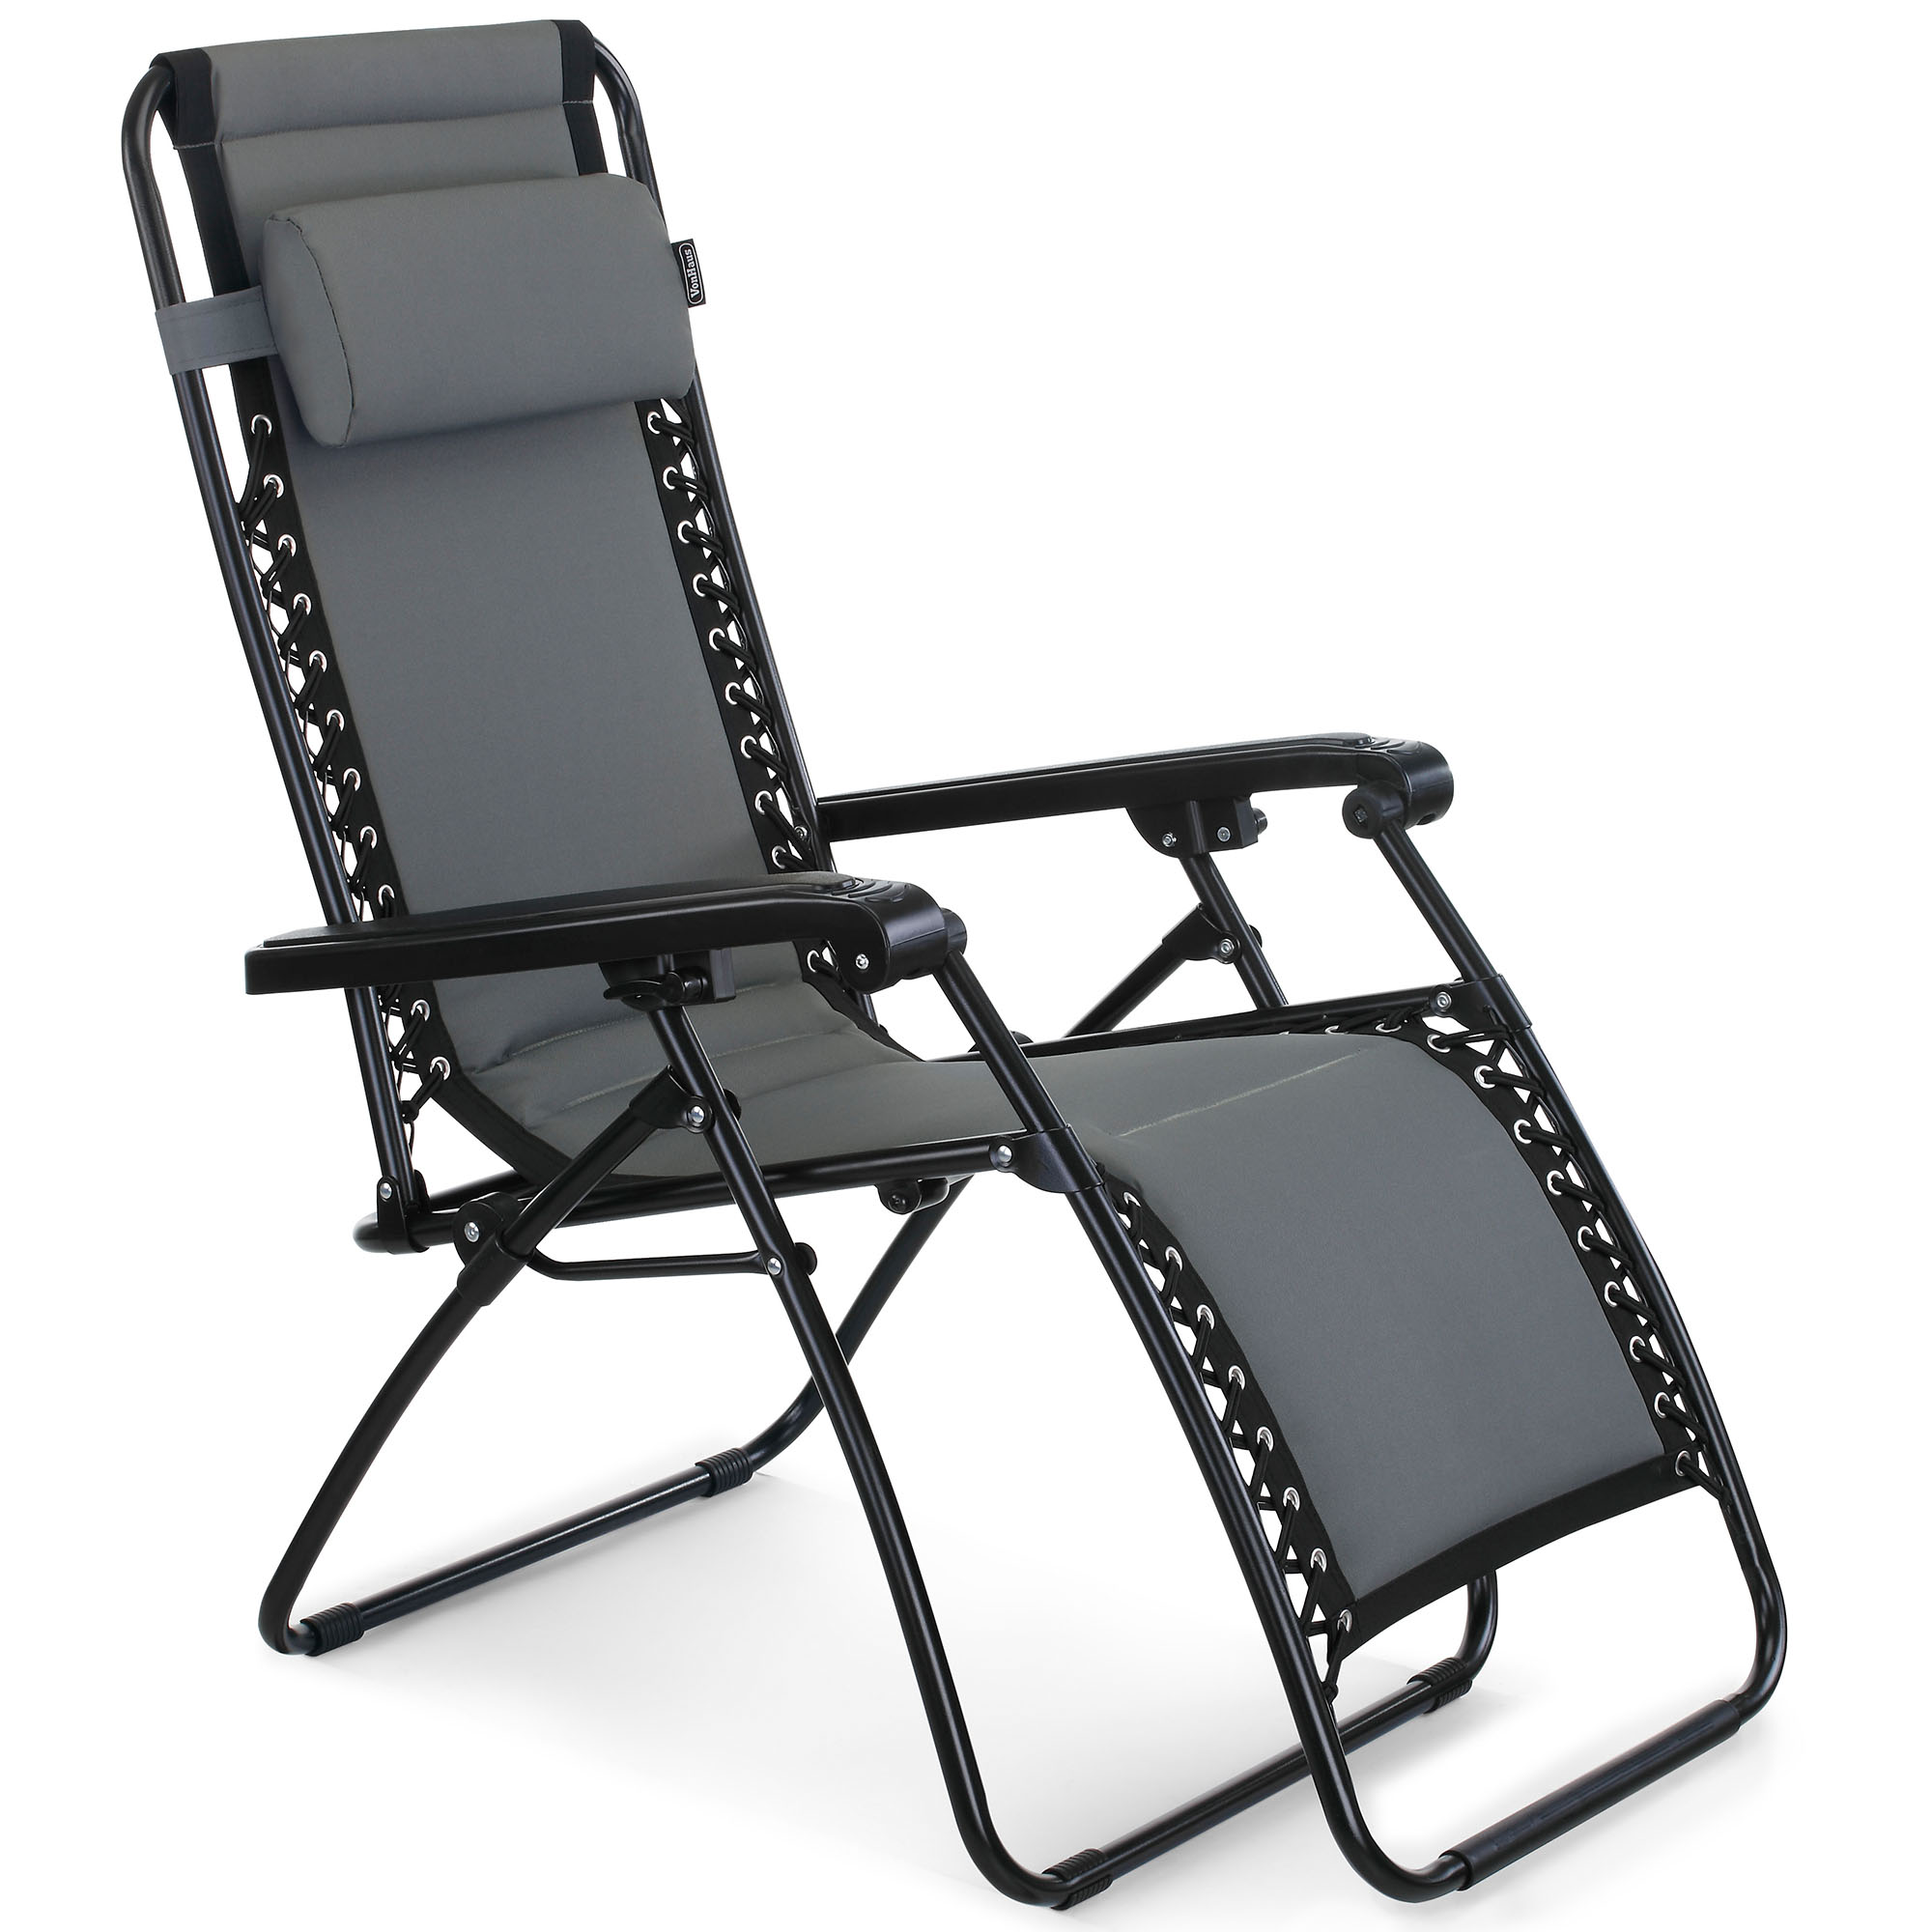 Sentinel VonHaus Oxford 600D Padded Zero Gravity Chair - Outdoor Sun Lounger Recliner for Patio Garden  sc 1 st  eBay & VonHaus Oxford 600D Padded Zero Gravity Chair Outdoor Garden Sun ... islam-shia.org